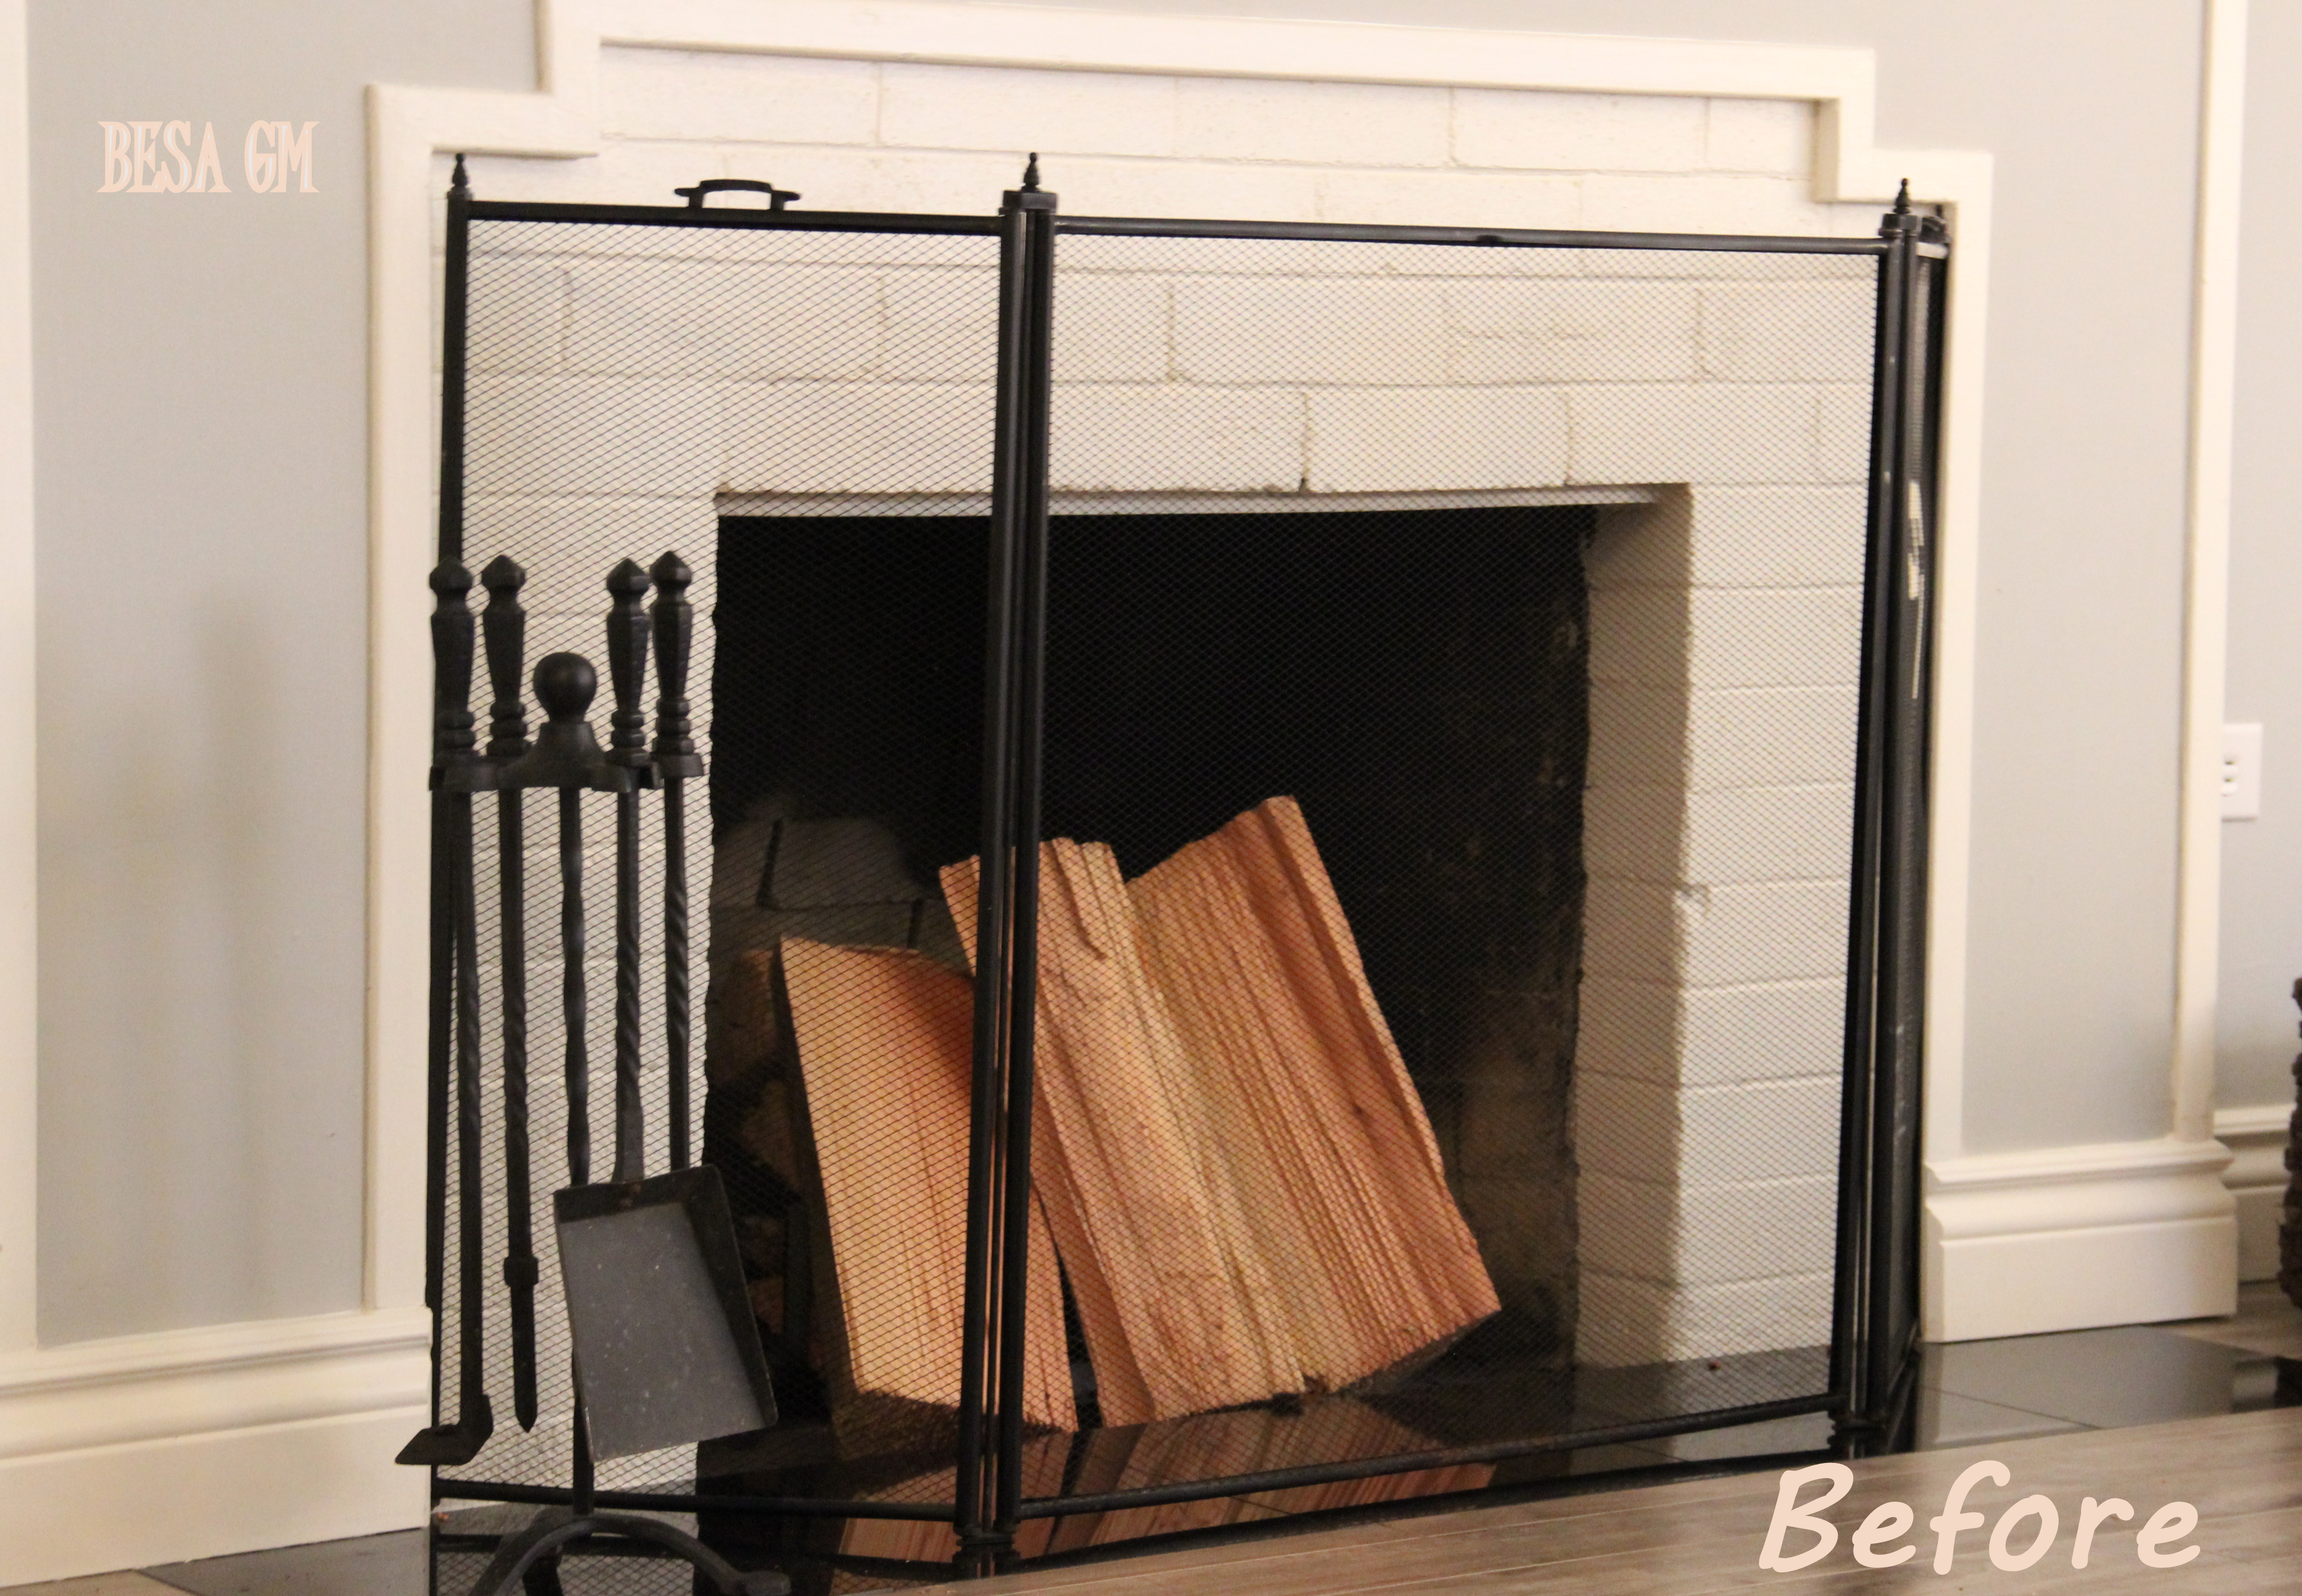 Fireplace Screen Mini Makeover | BESA GM